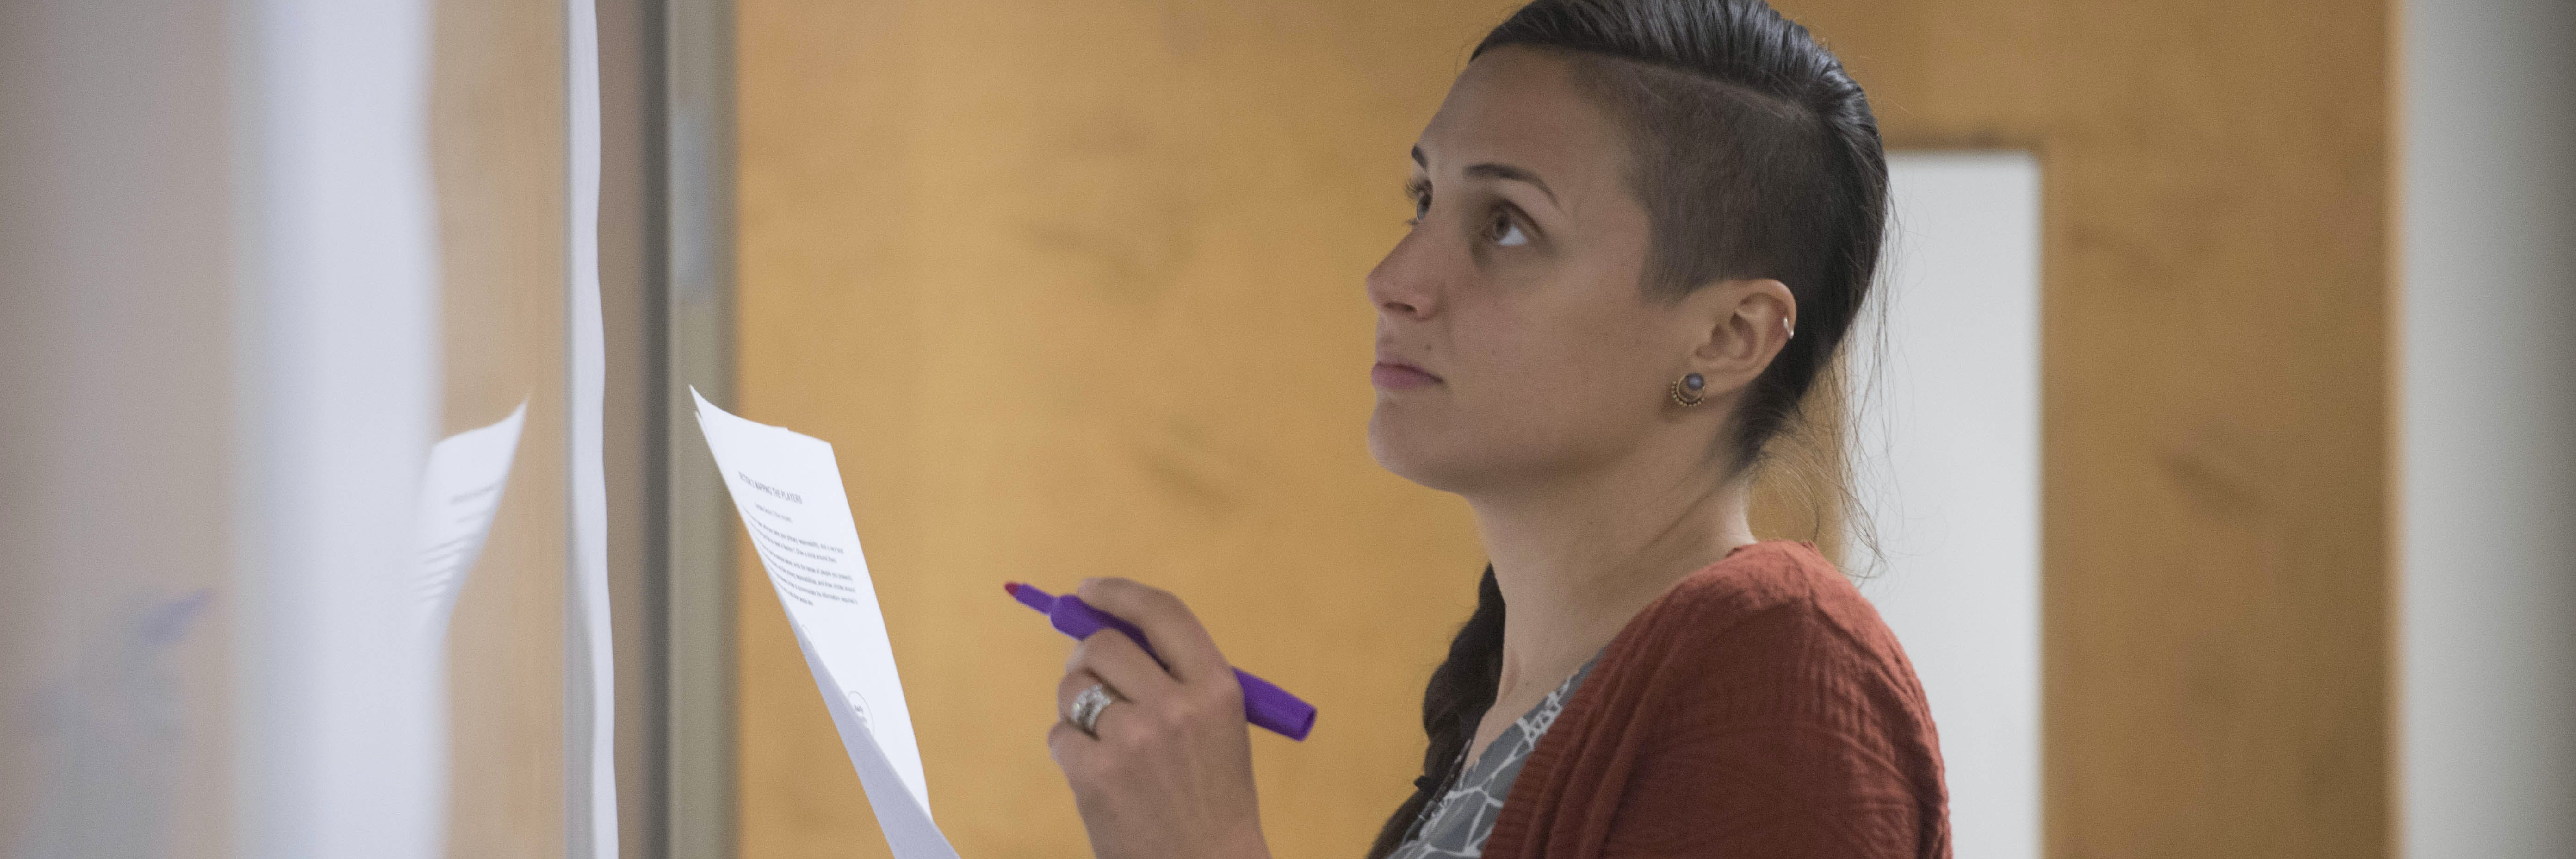 Earn your B.A. in psychology online at Bethel University.